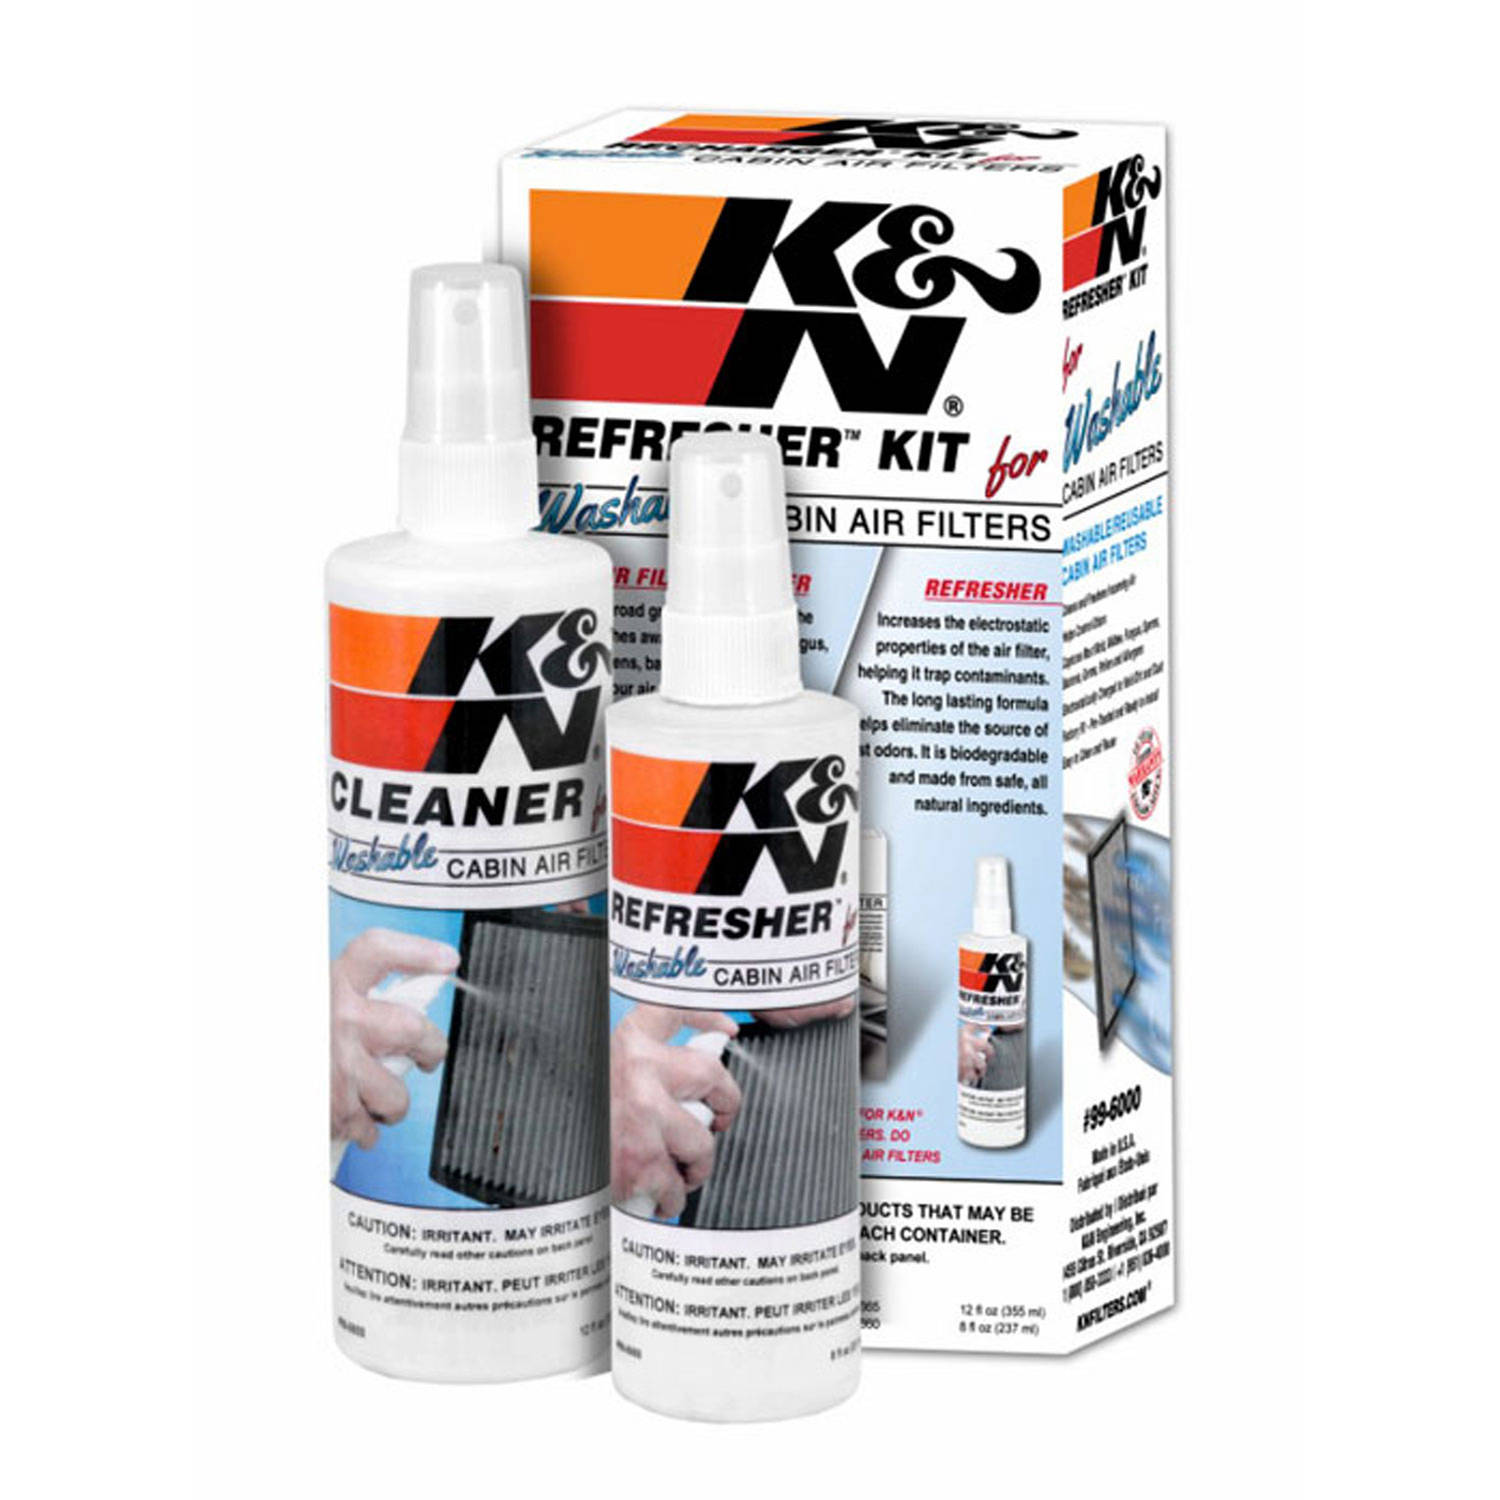 Kn Air Filters 1999 Camry Fuel Filter Location 99 6000 Cabin Refresher Kit